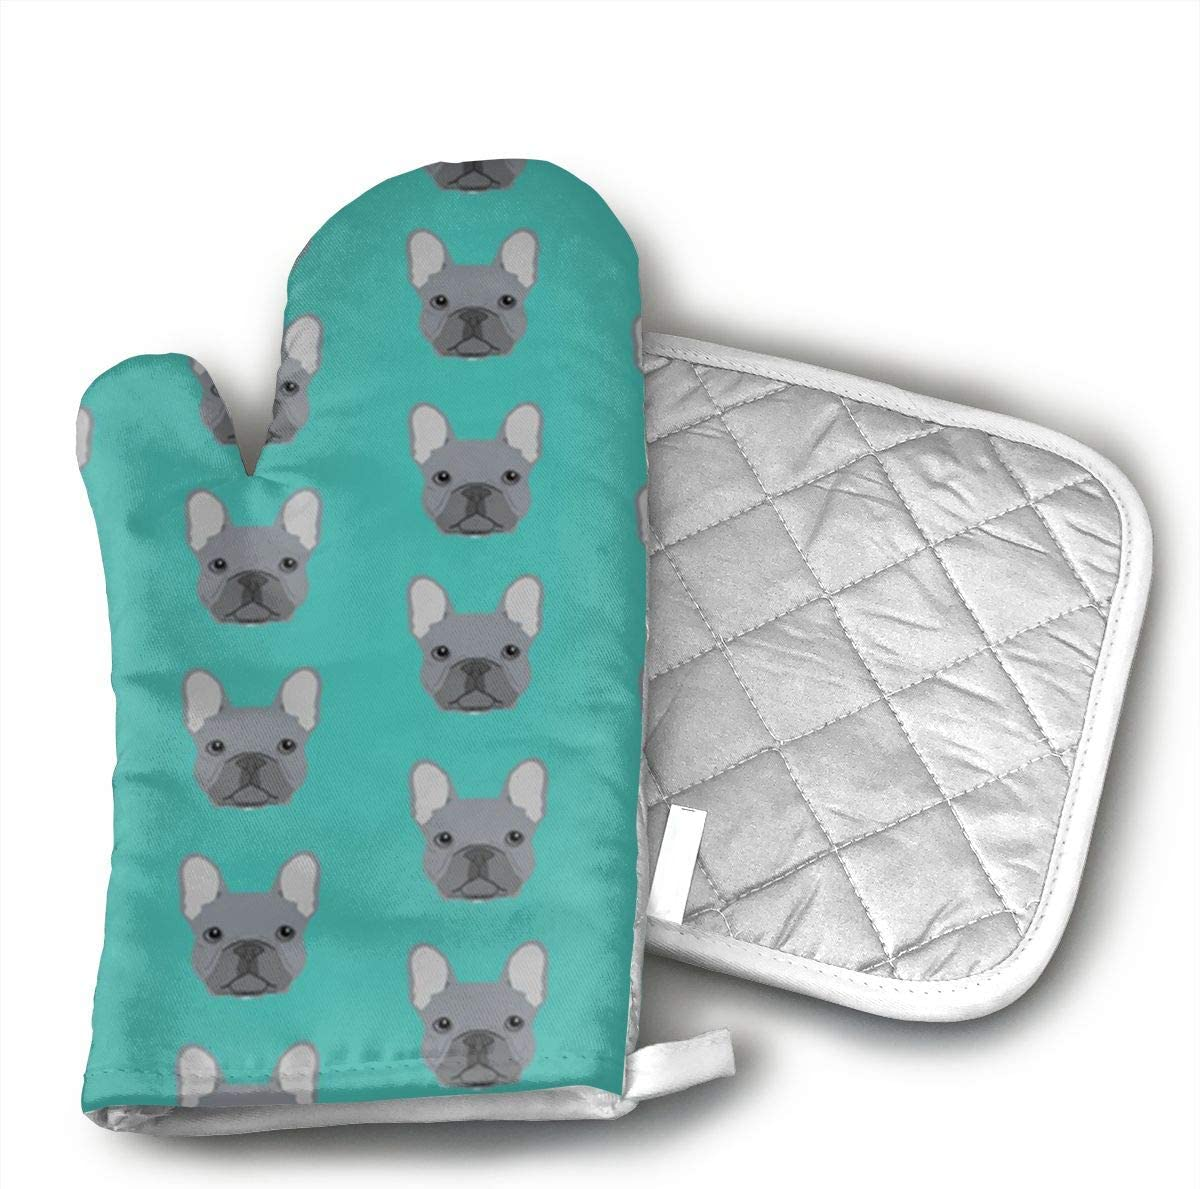 Wiqo9 Frenchie Fabric French Bulldog Oven Mitts and Pot Holders Kitchen Mitten Cooking Gloves,Cooking, Baking, BBQ.